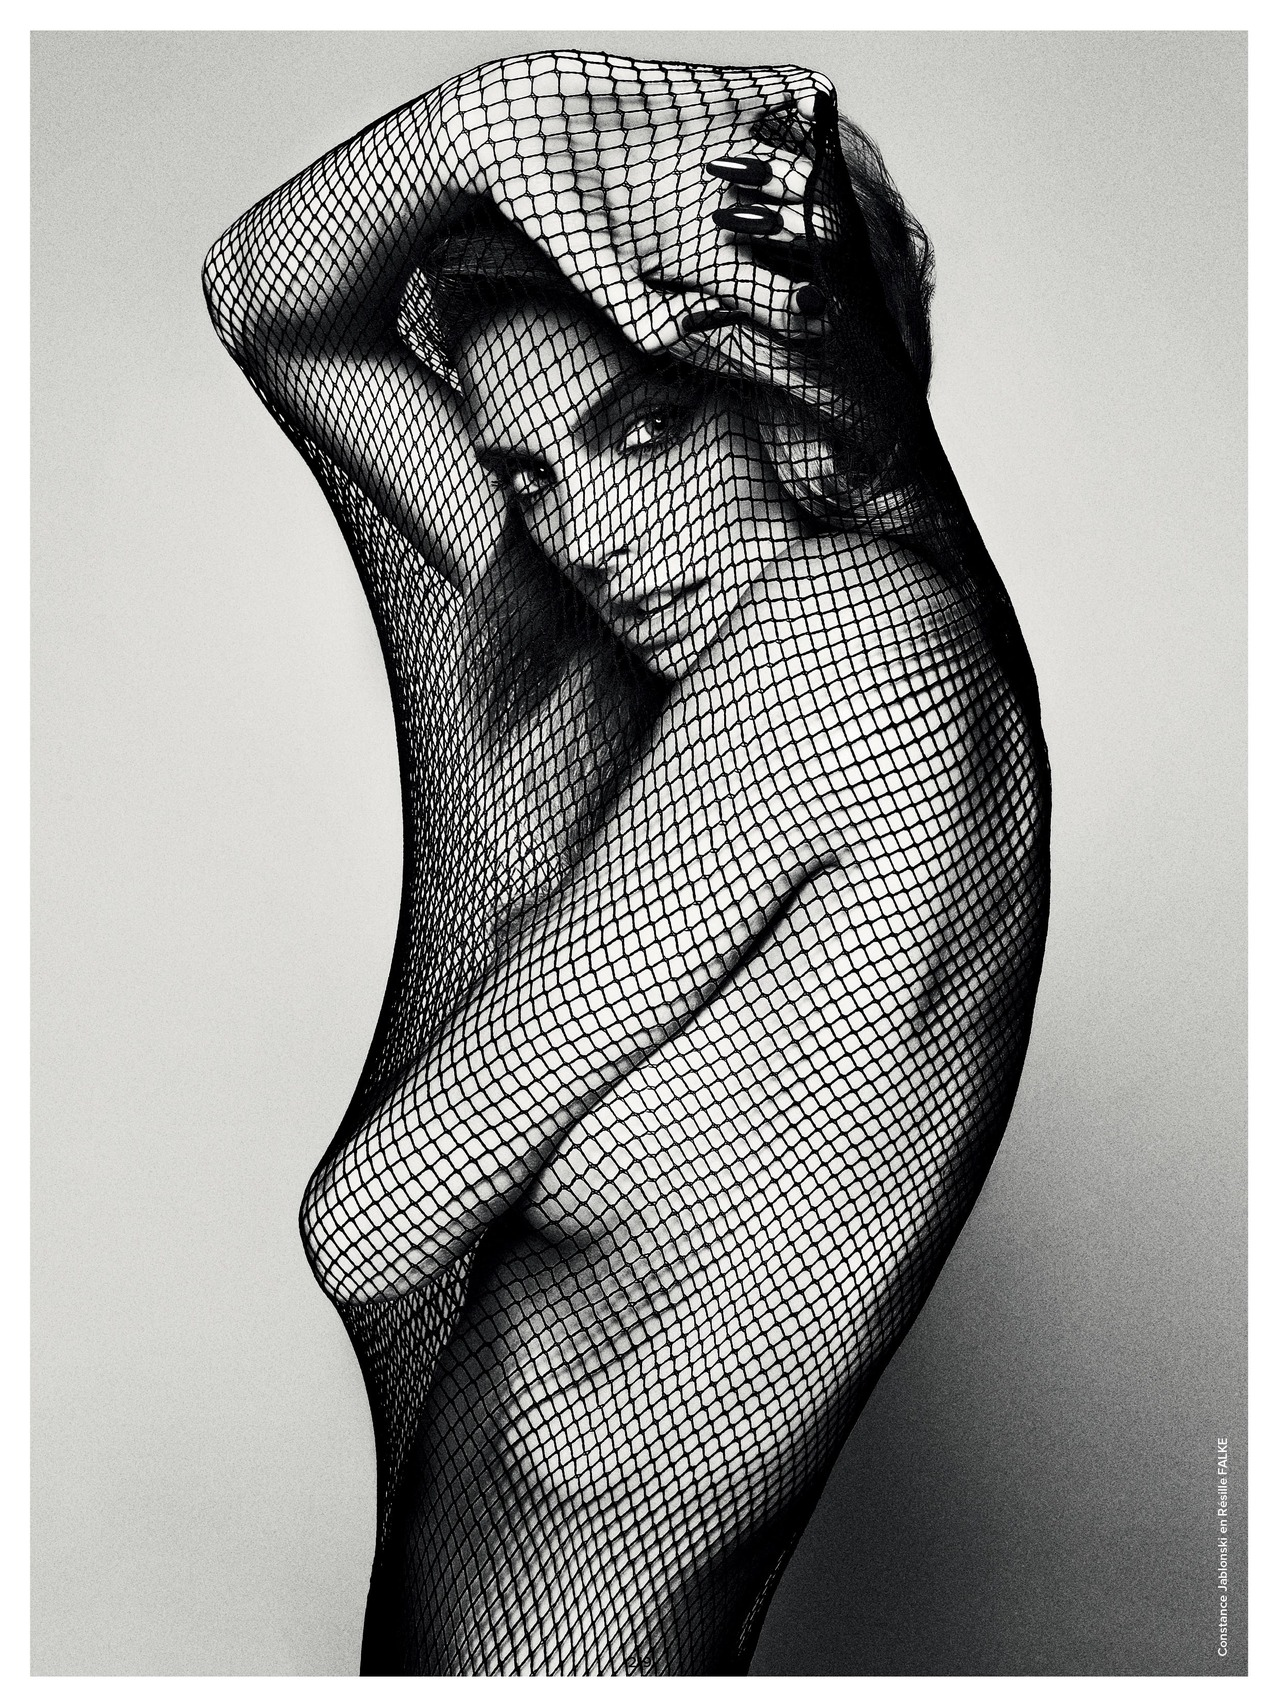 Constance Jablonski photgraphed by Txema Yeste for Antidote Magazine, F.W 2012.